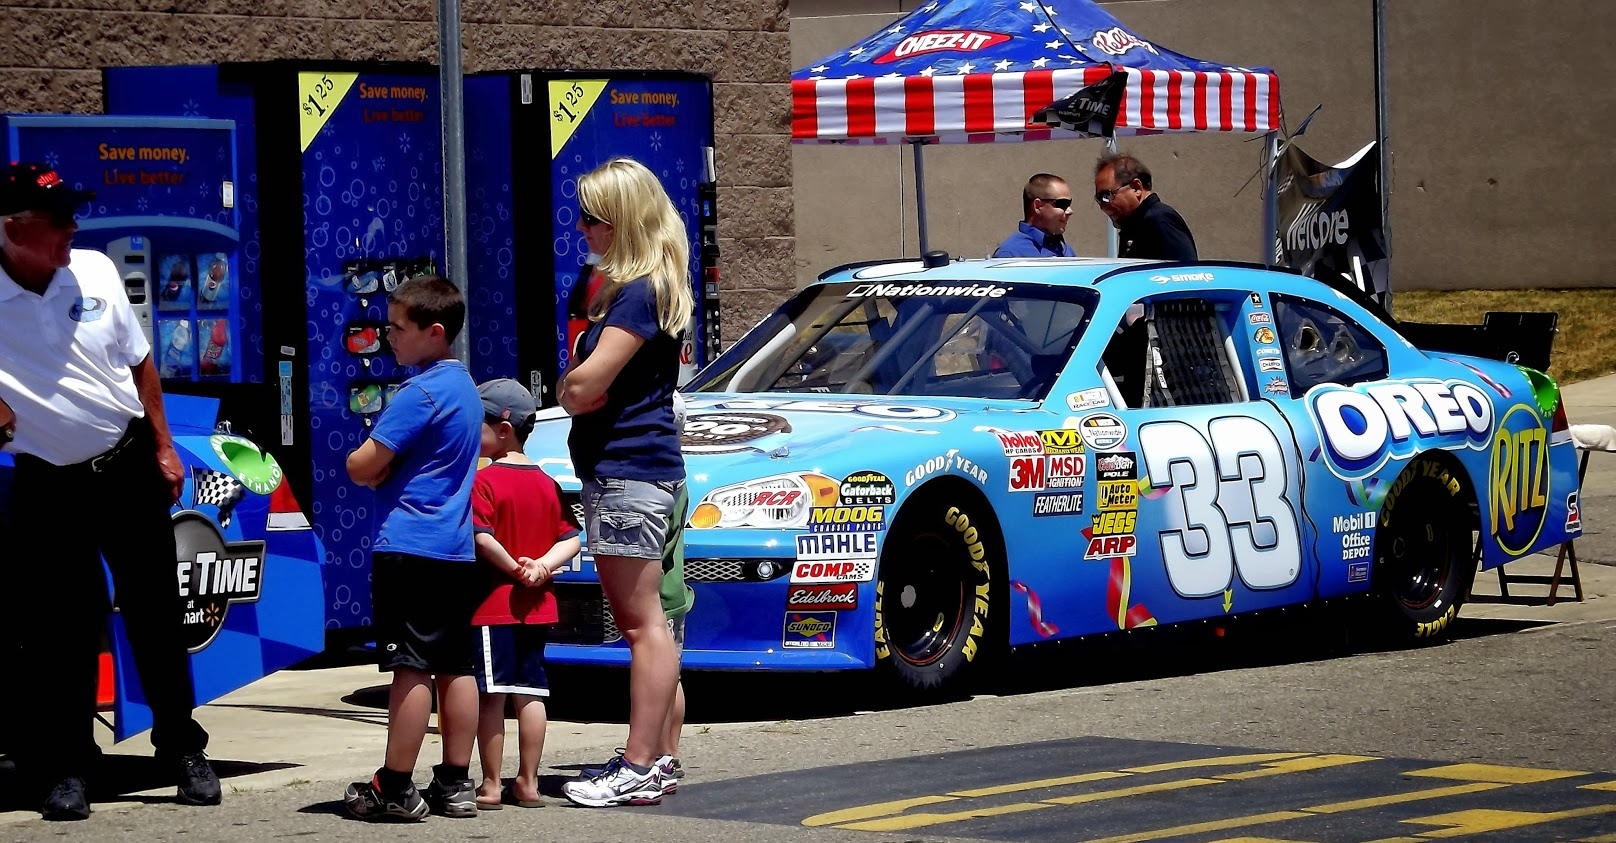 Blue #33 race car with young and old fans